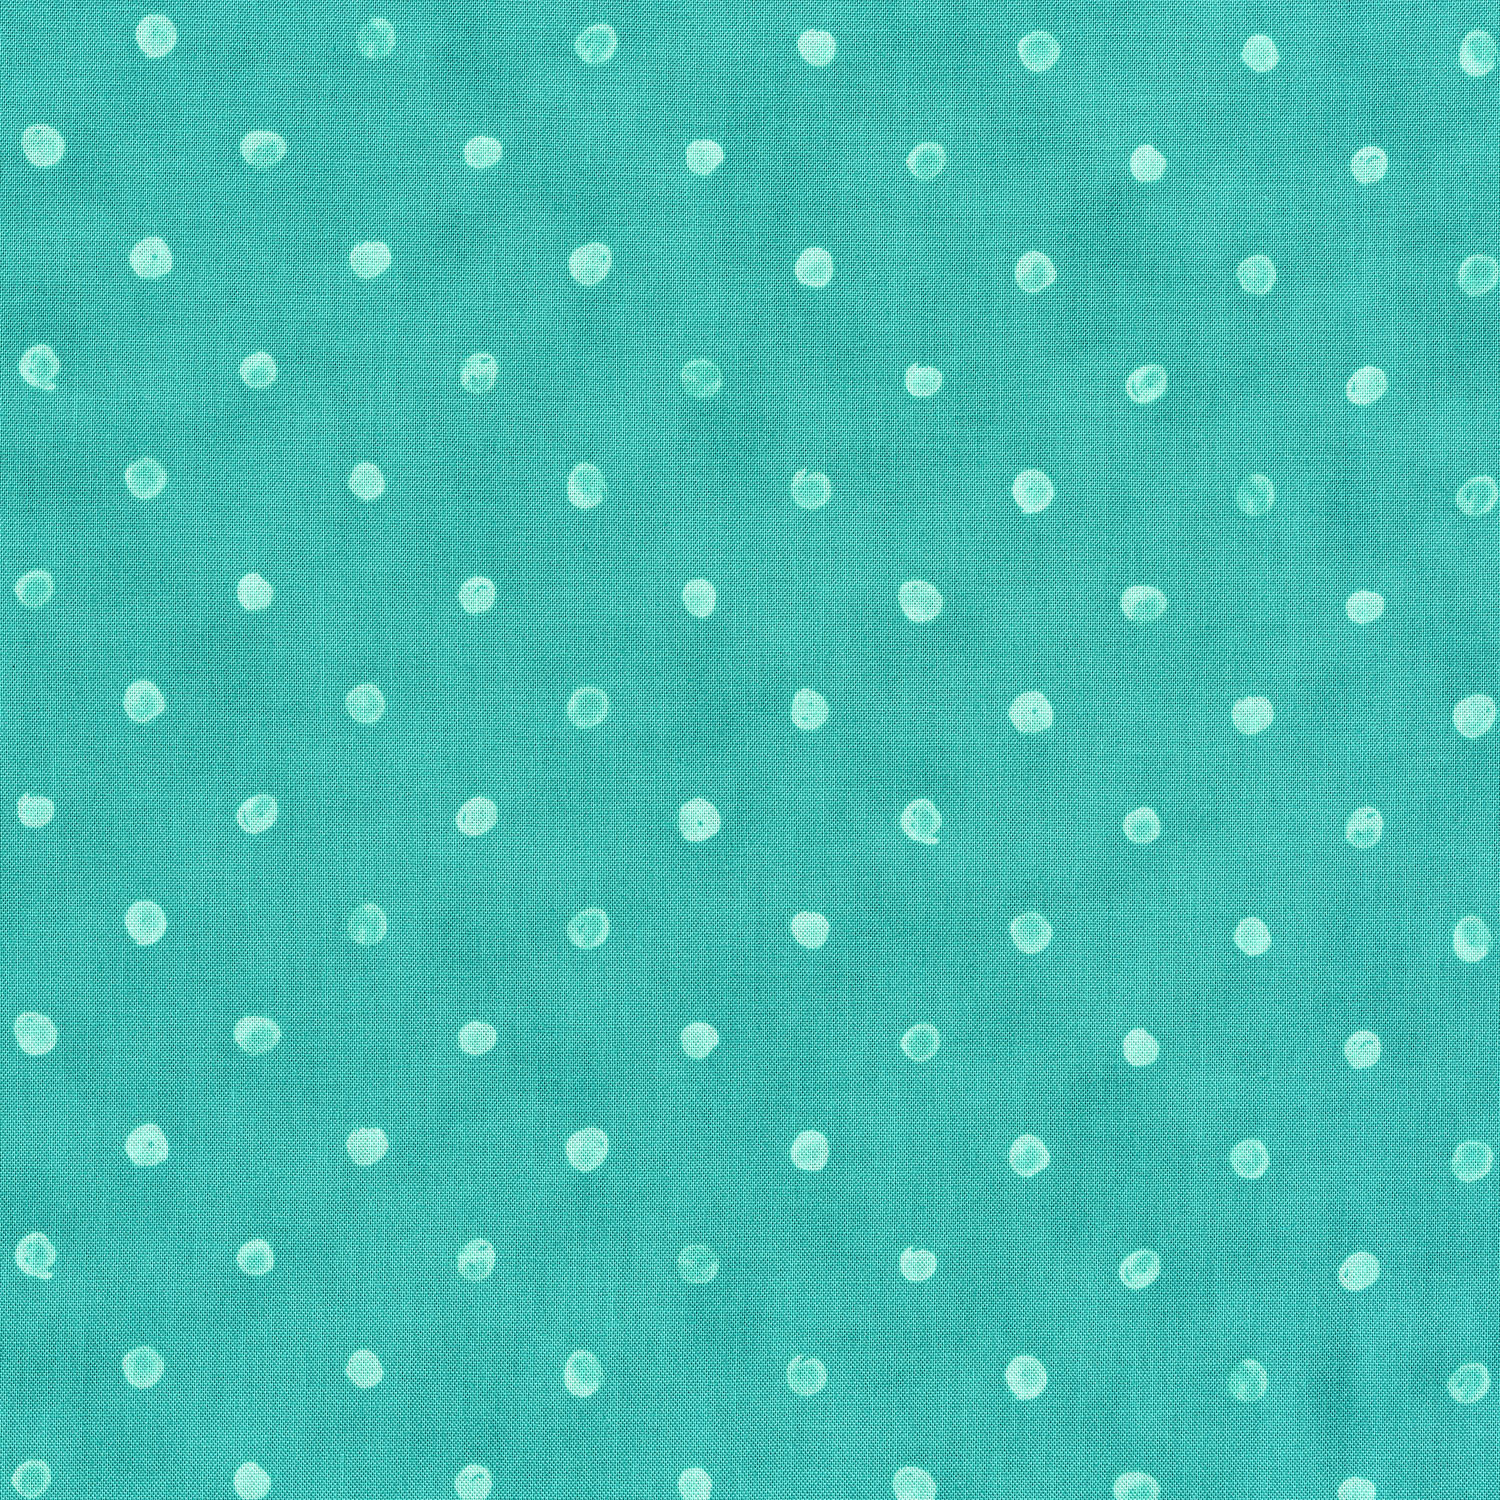 2953-007  DARLING DOTS-TURQUOISE